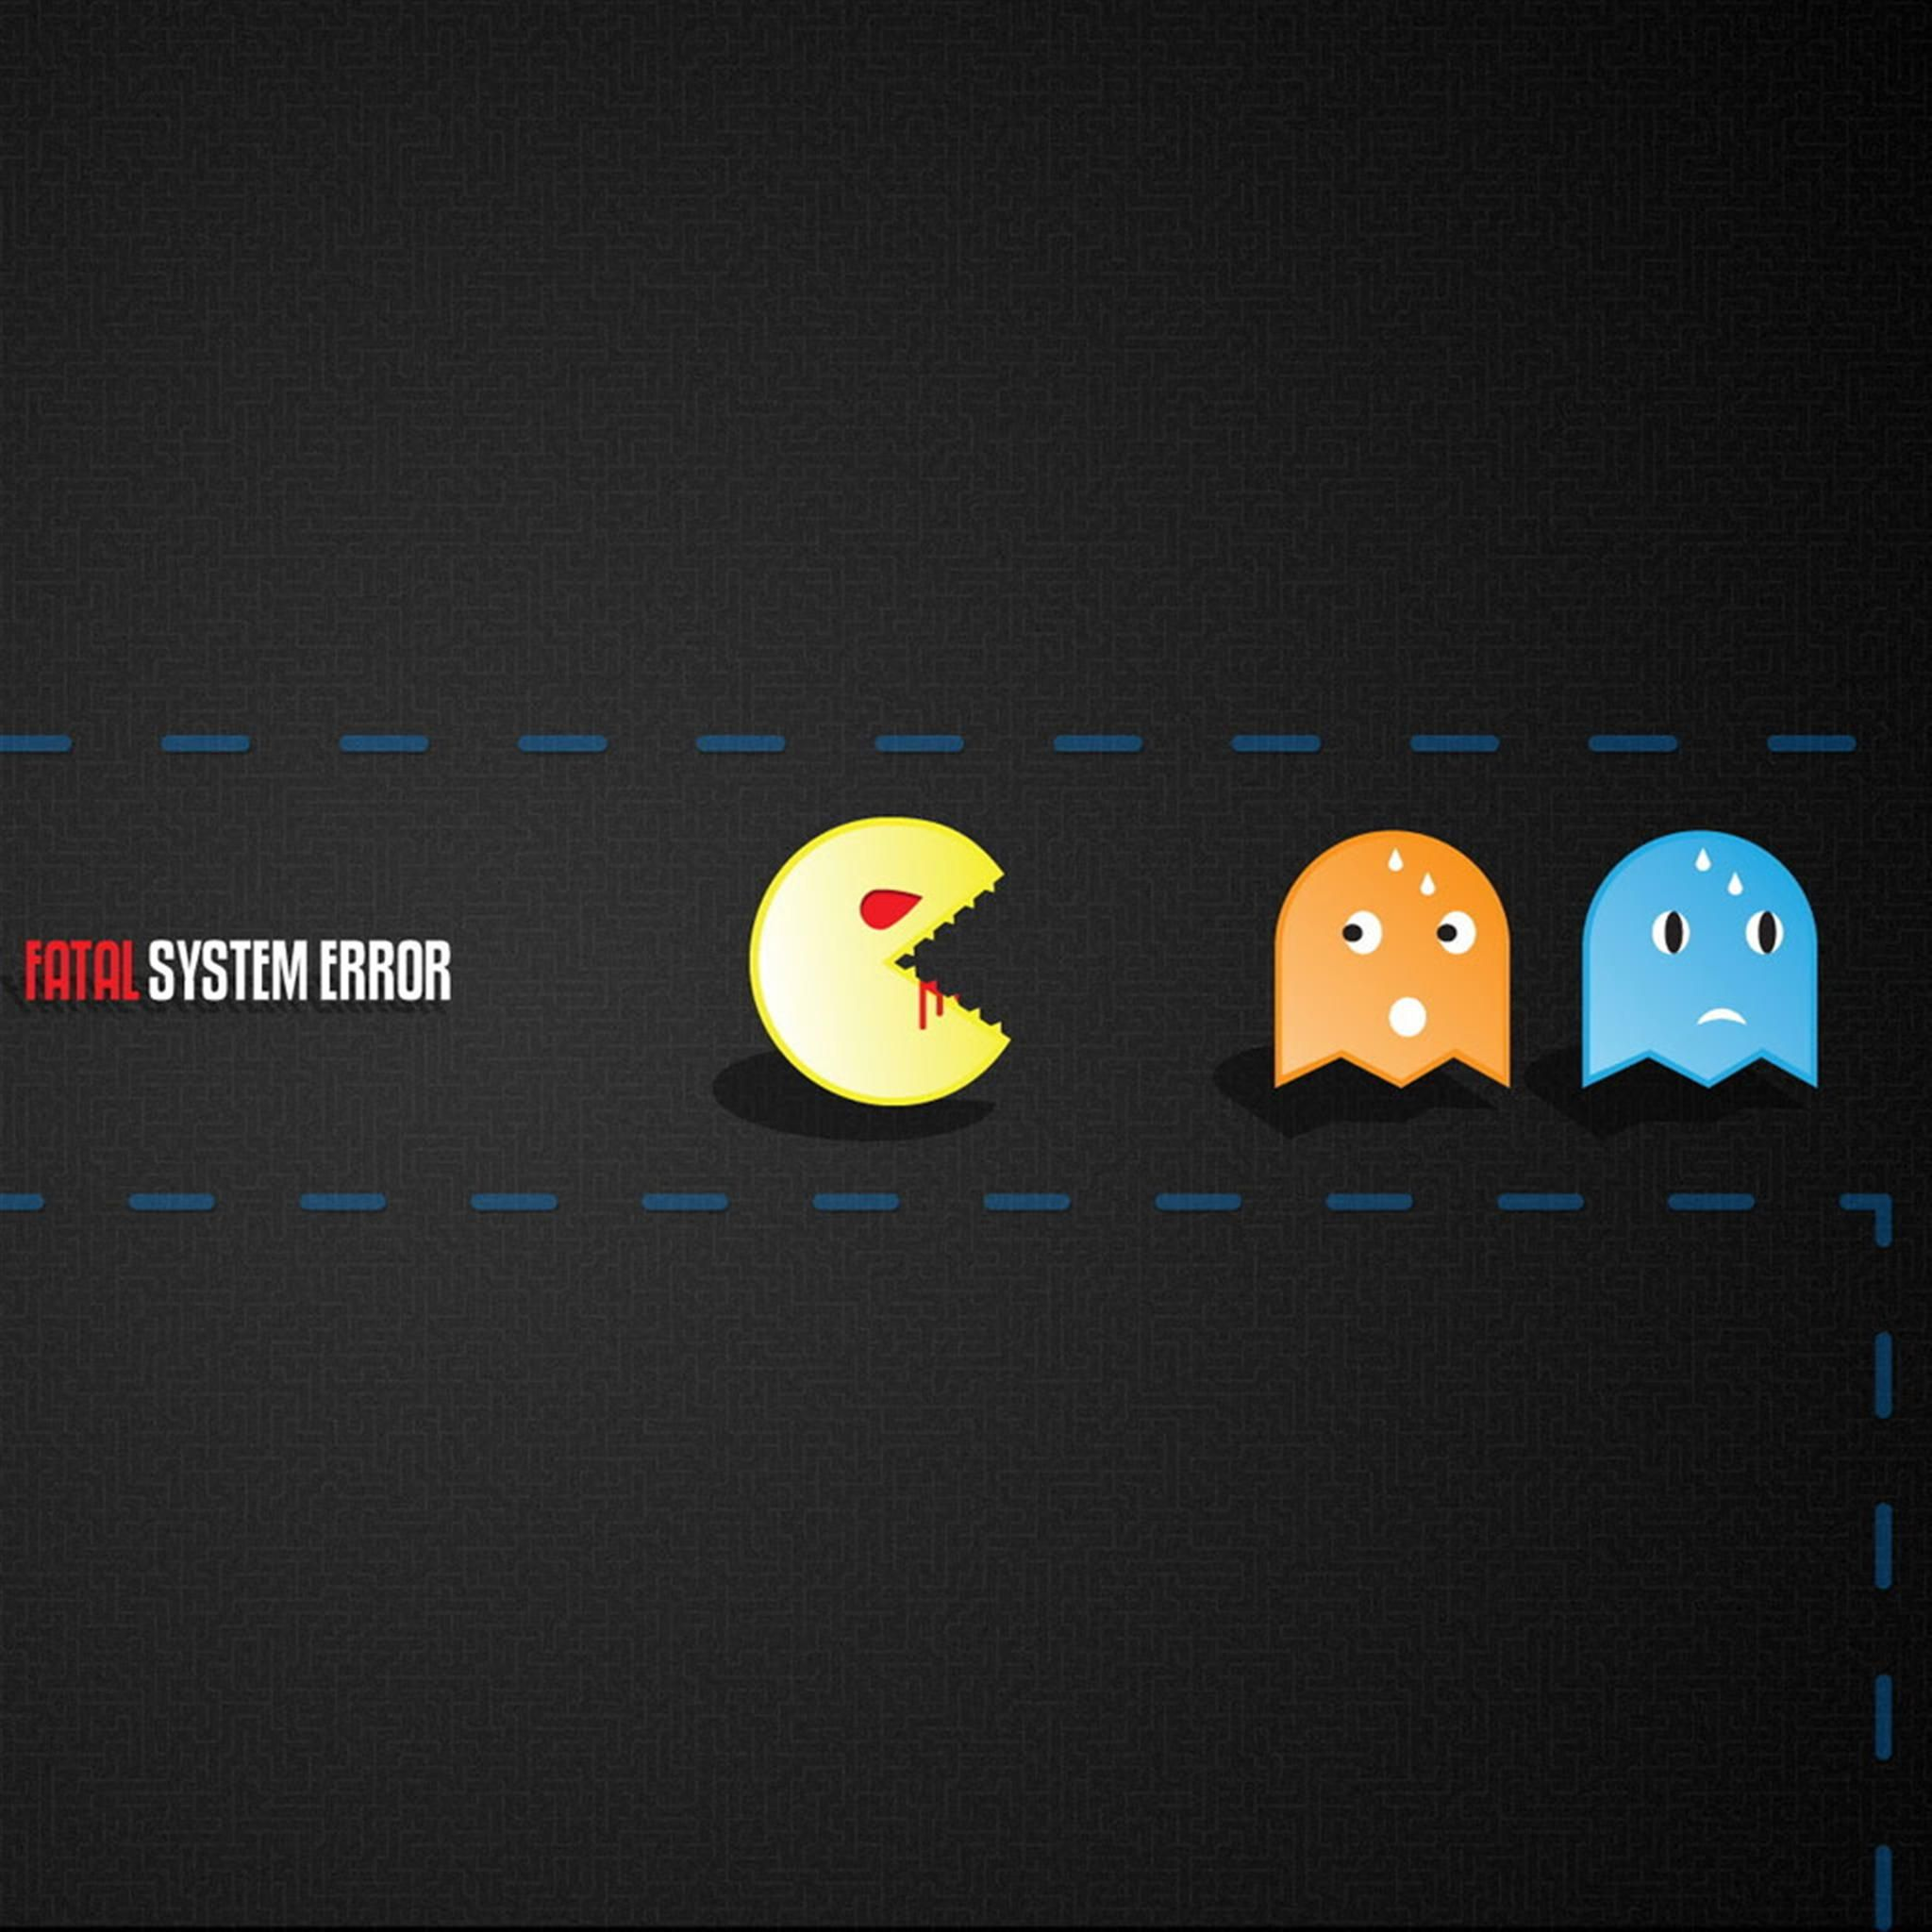 system error tap to see more funny april fools wallpapers backgrounds fondos for